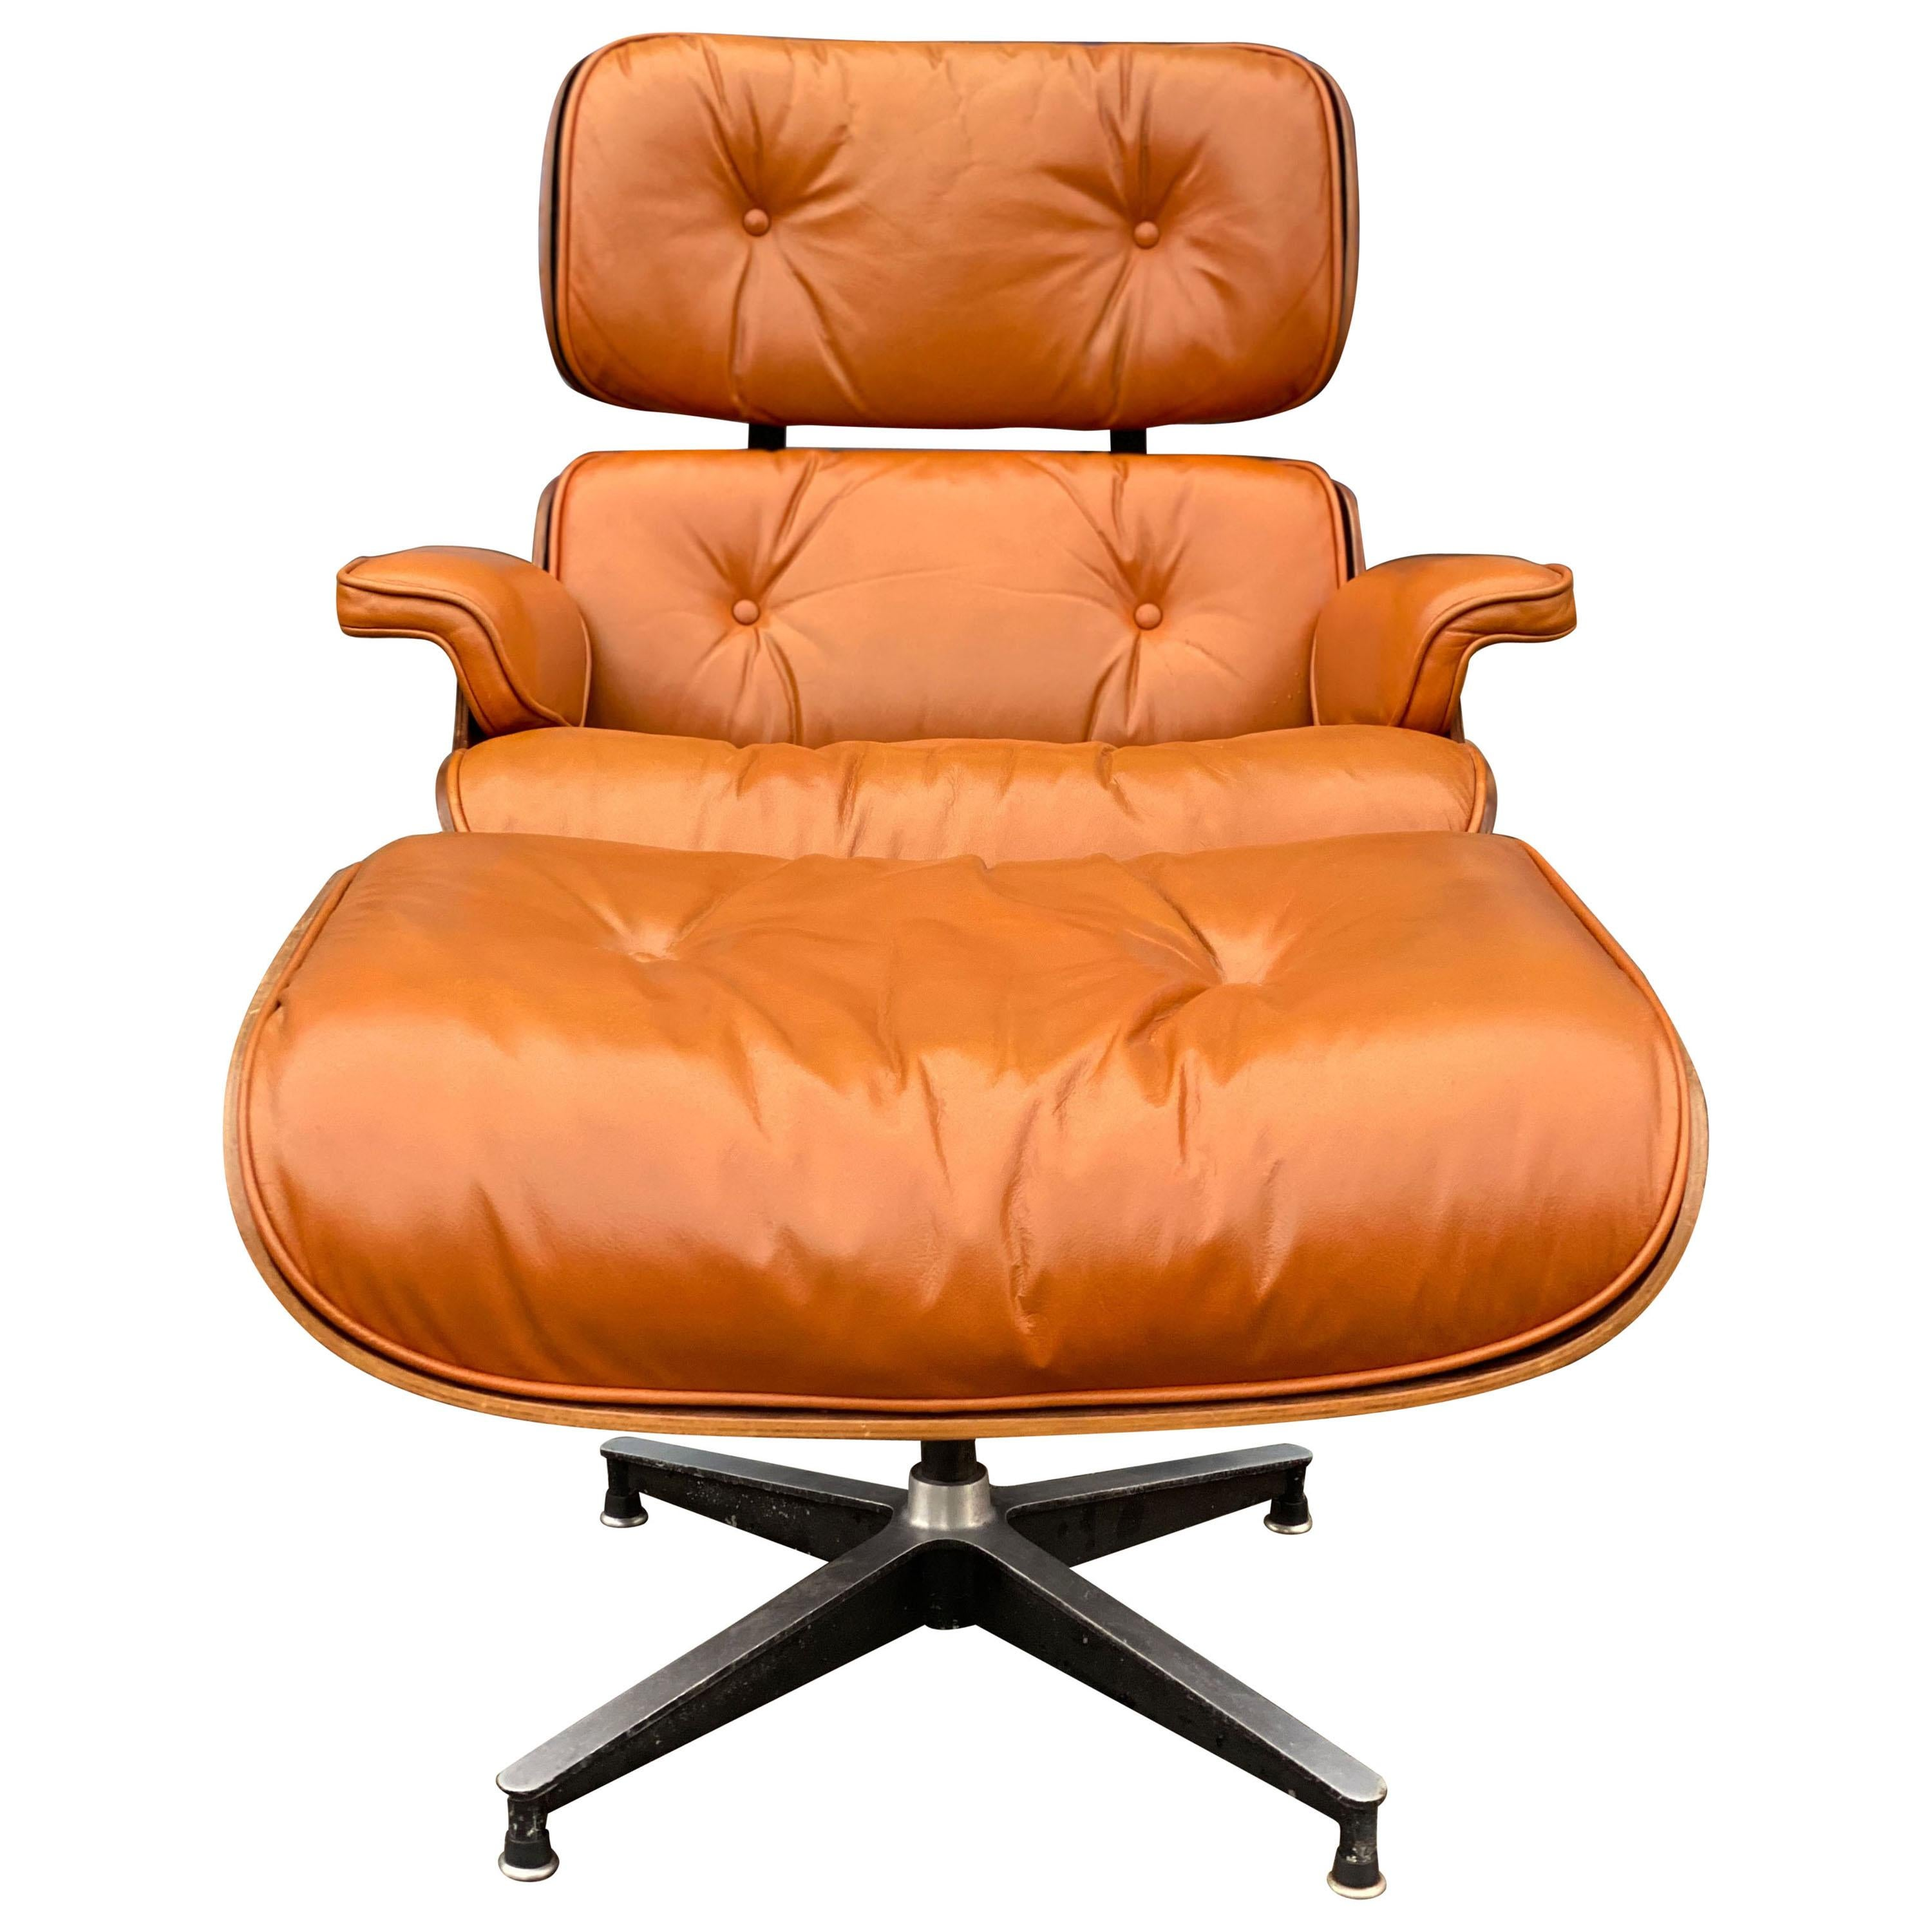 Custom Eames Lounge Chair and Ottoman in Burnt Orangr